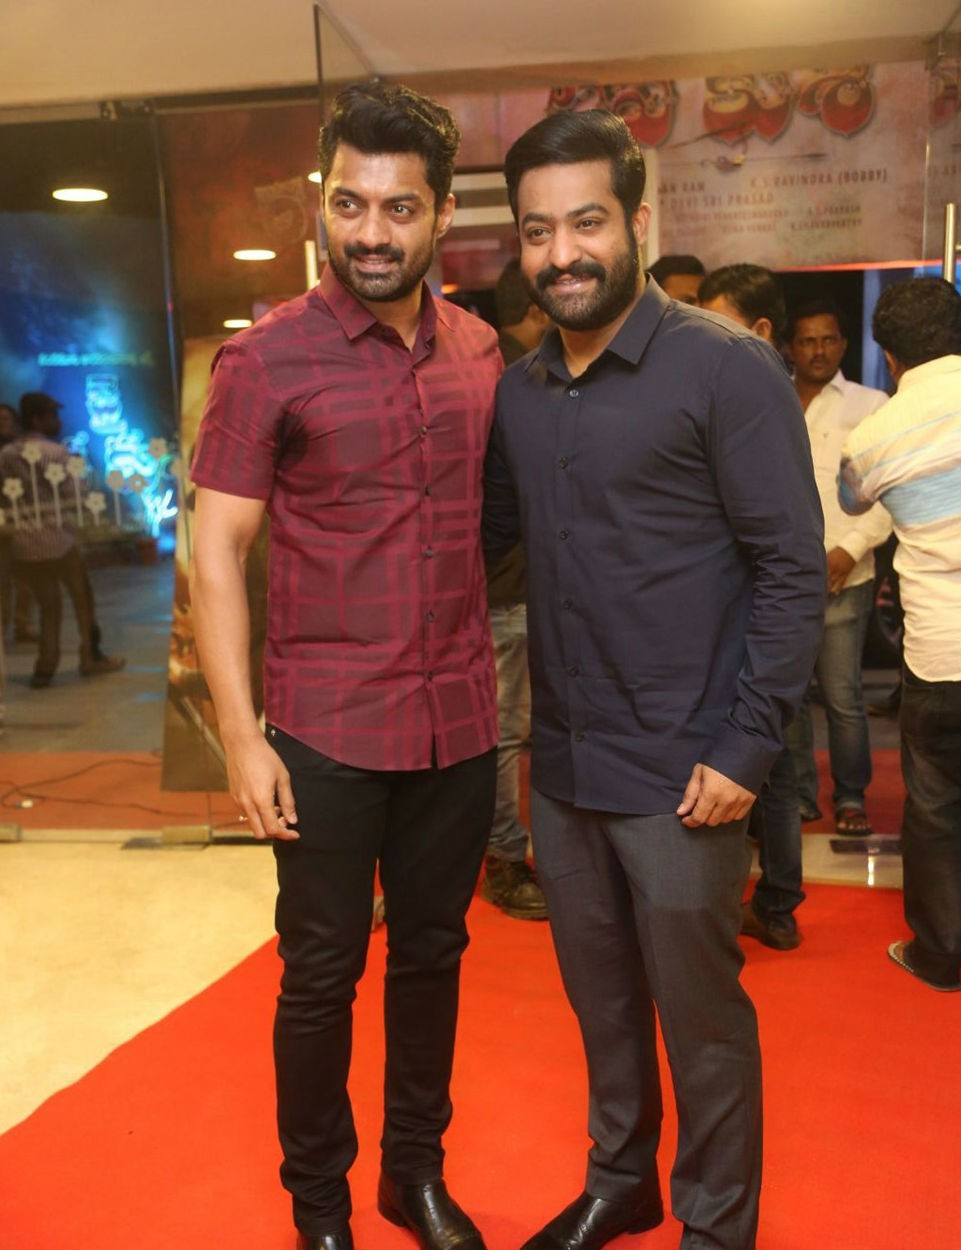 Jr NTR,Raashi Khanna,Nandamuri Kalyan Ram,Jai Lava Kusa audio press meet,Jai Lava Kusa audio,Jai Lava Kusa,Jai Lava Kusa audio launch,Jai Lava Kusa audio launch pics